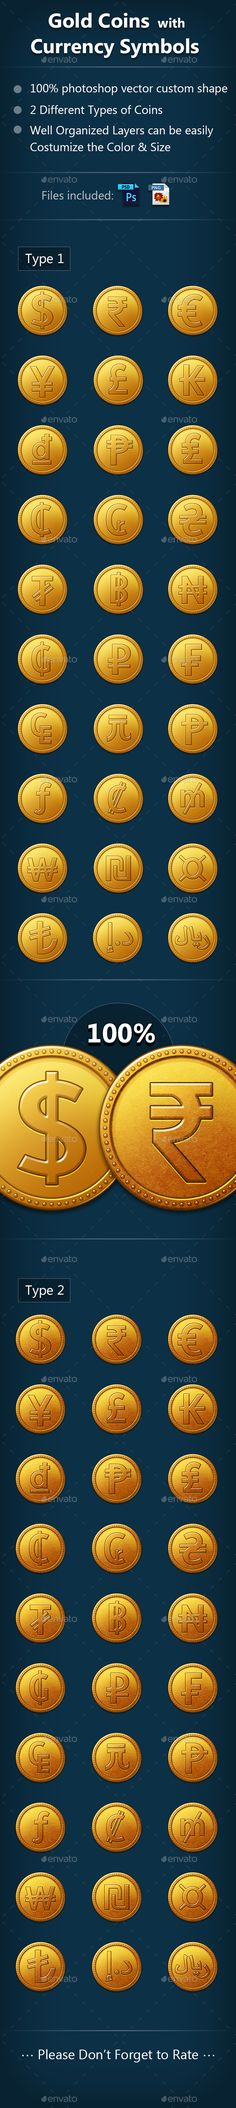 Gold Coin with Currency Symbols - #Icons Download here: https://graphicriver.net/item/gold-coin-with-currency-symbols/20063076?ref=alena994